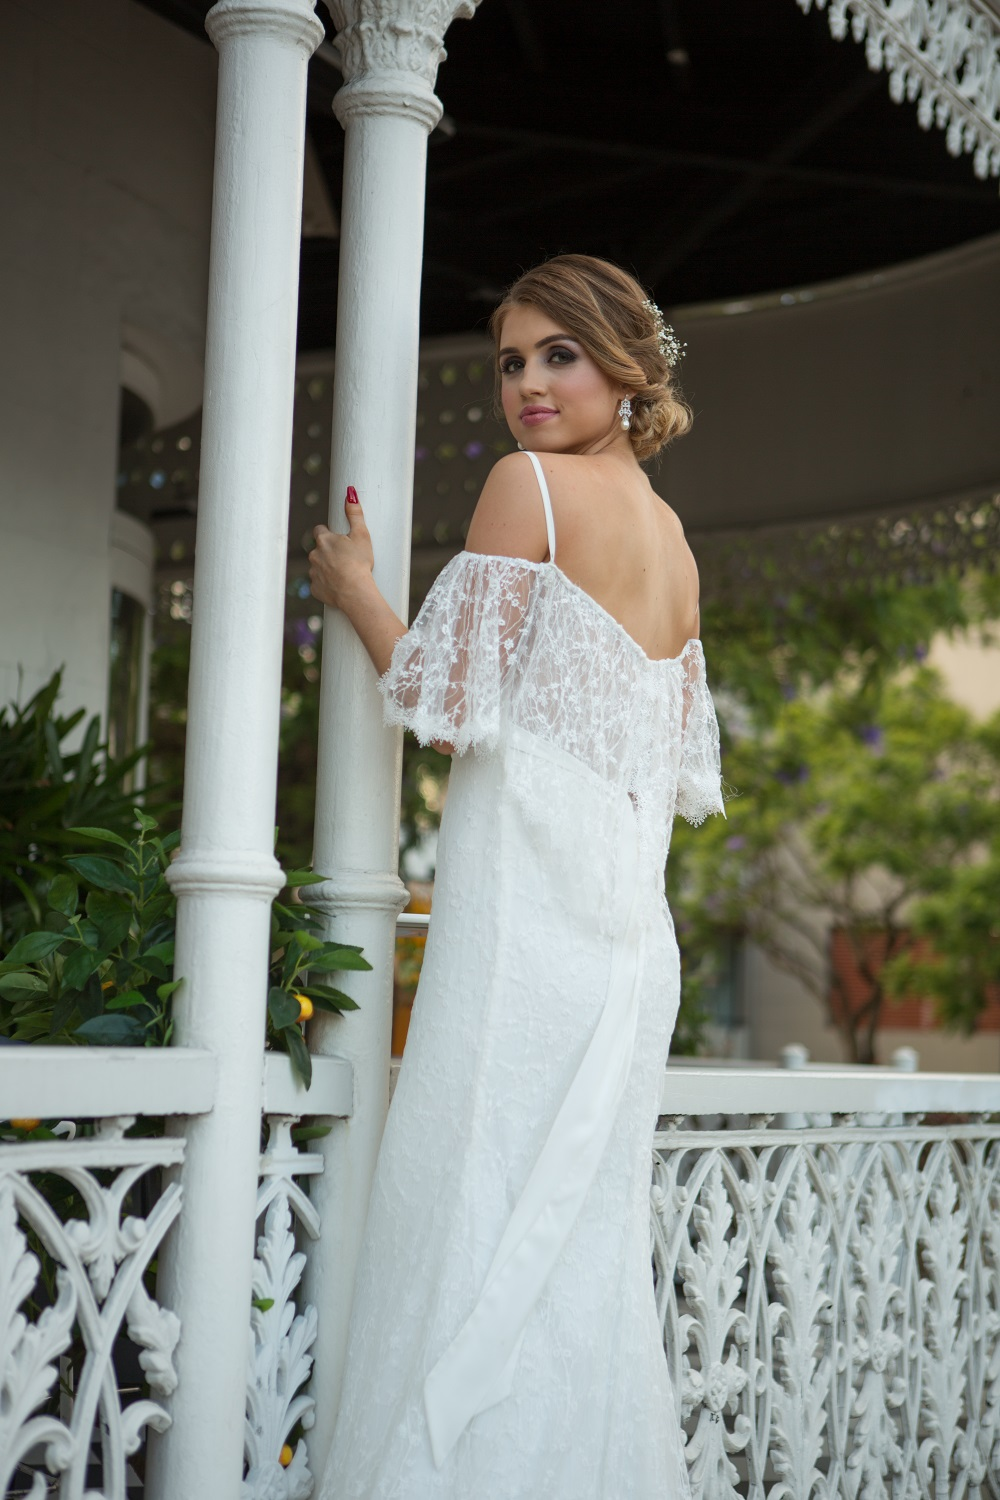 Maisie bohemian wedding dress